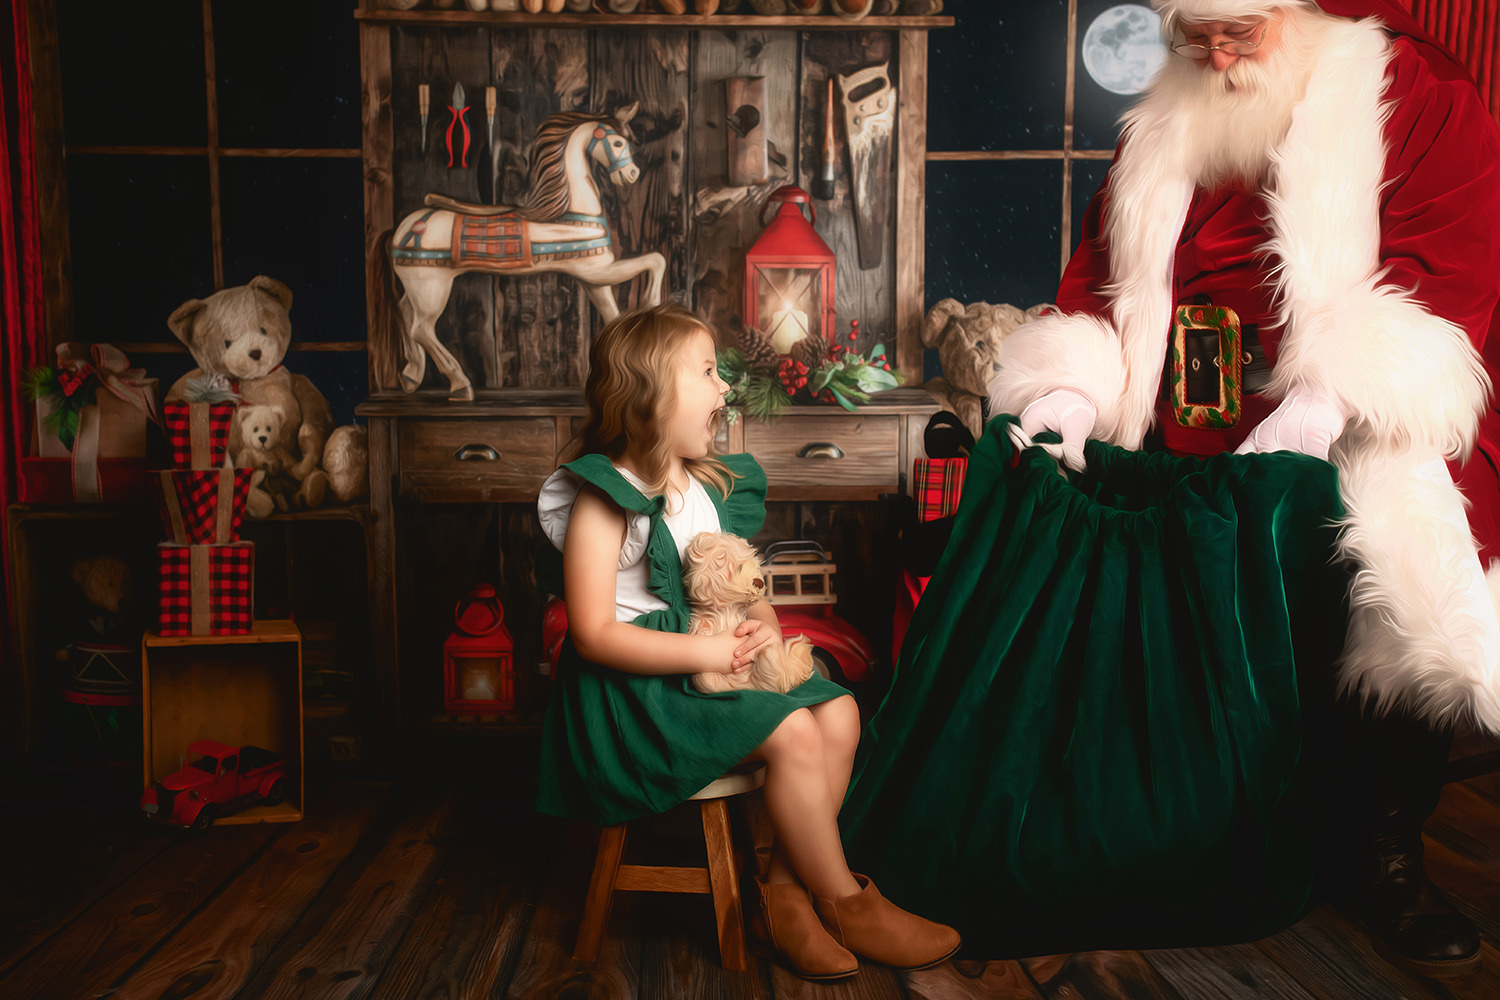 Rochester Santa Mini Sessions - Little Girl sitting in front of Santa at his workshop